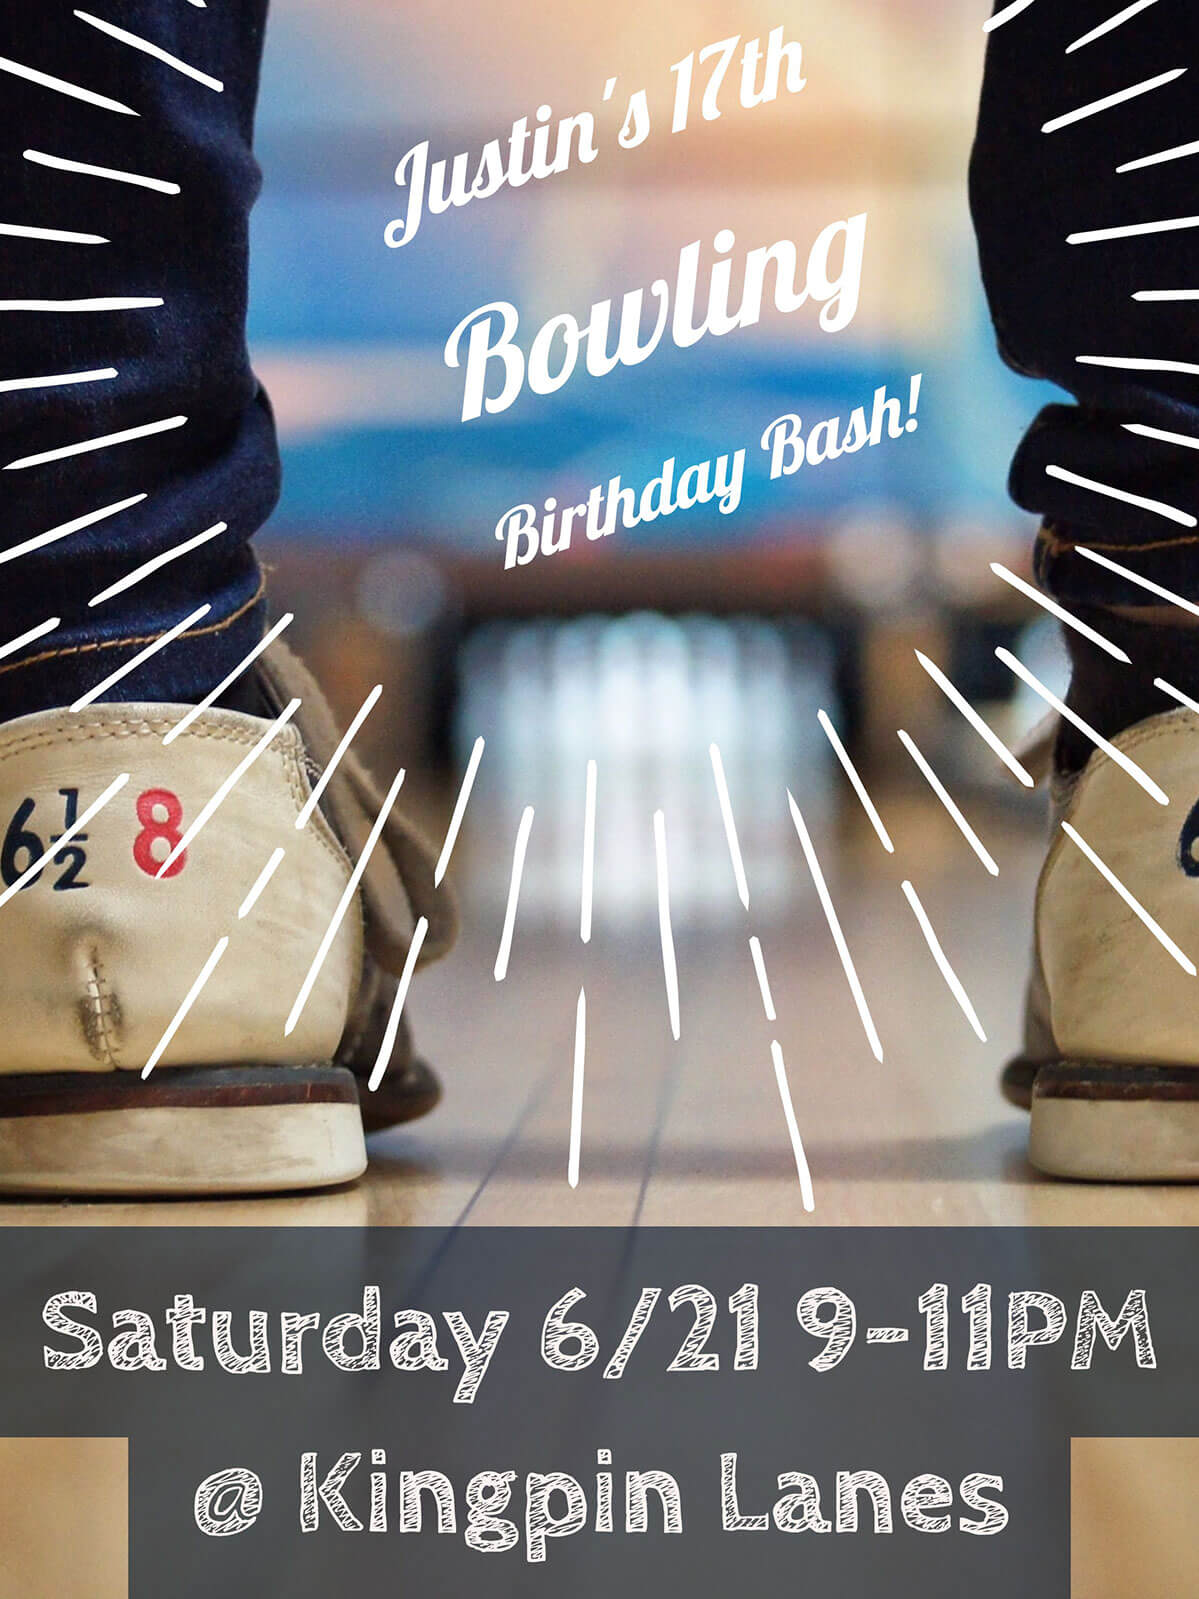 Boy's birthday party invite